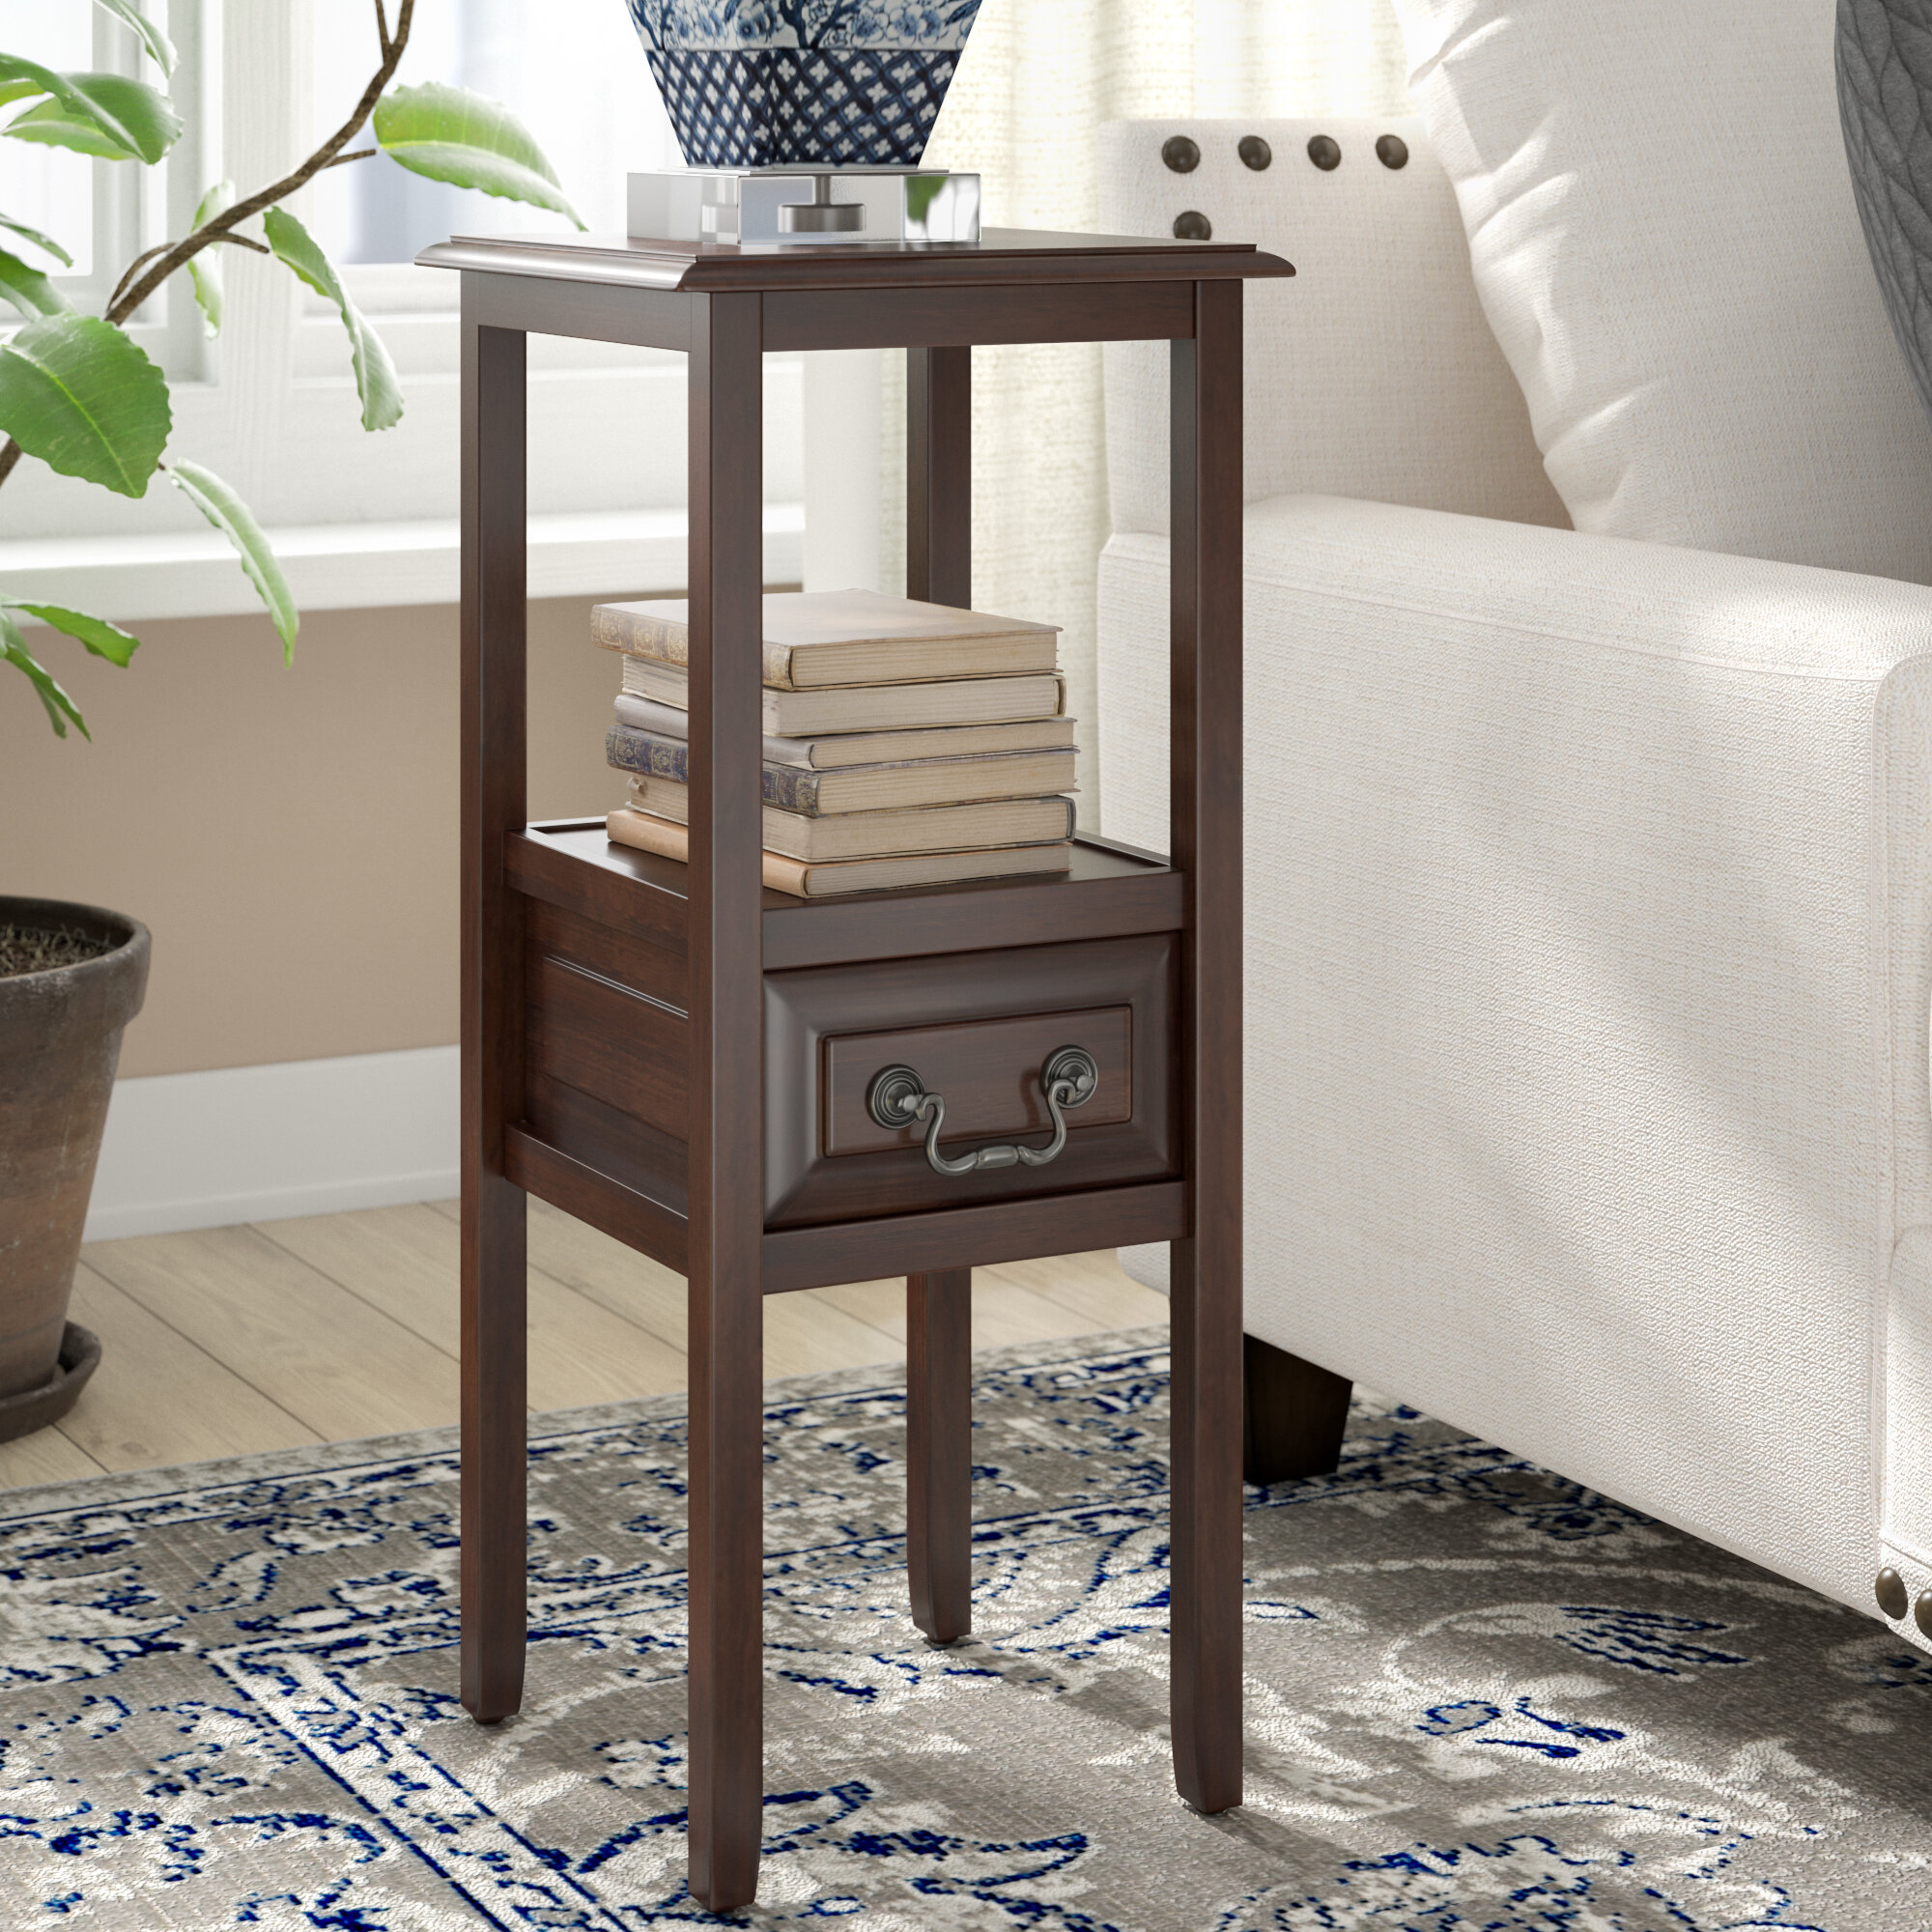 Darby Home Co Gilson End Table With Storage & Reviews | Wayfair on home casual patio furniture cushions, home goods patio furniture, home trends patio furniture parts, home casual replacement slings,